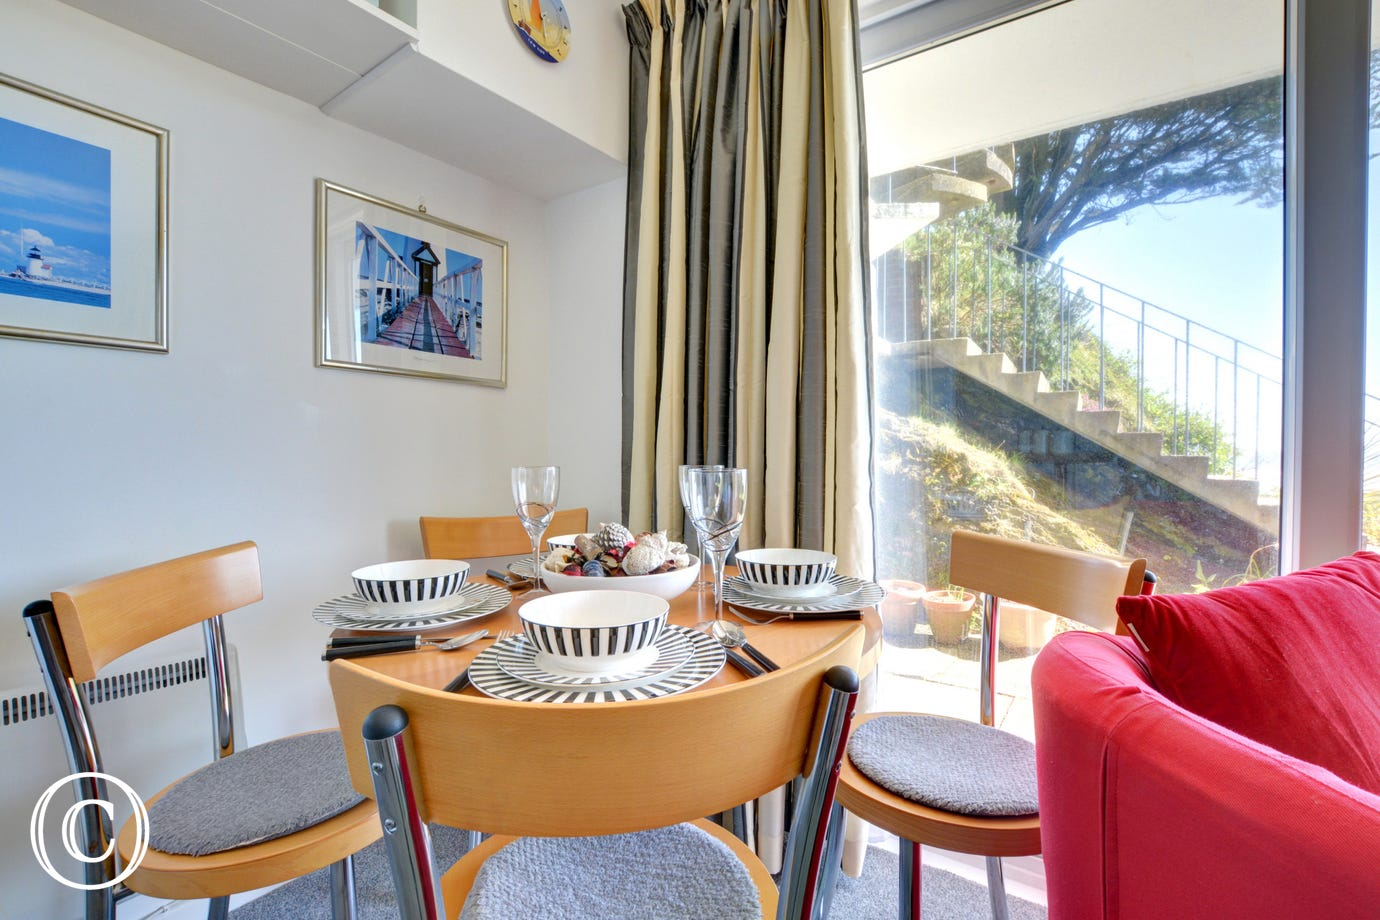 Dining area at this super compact holiday property